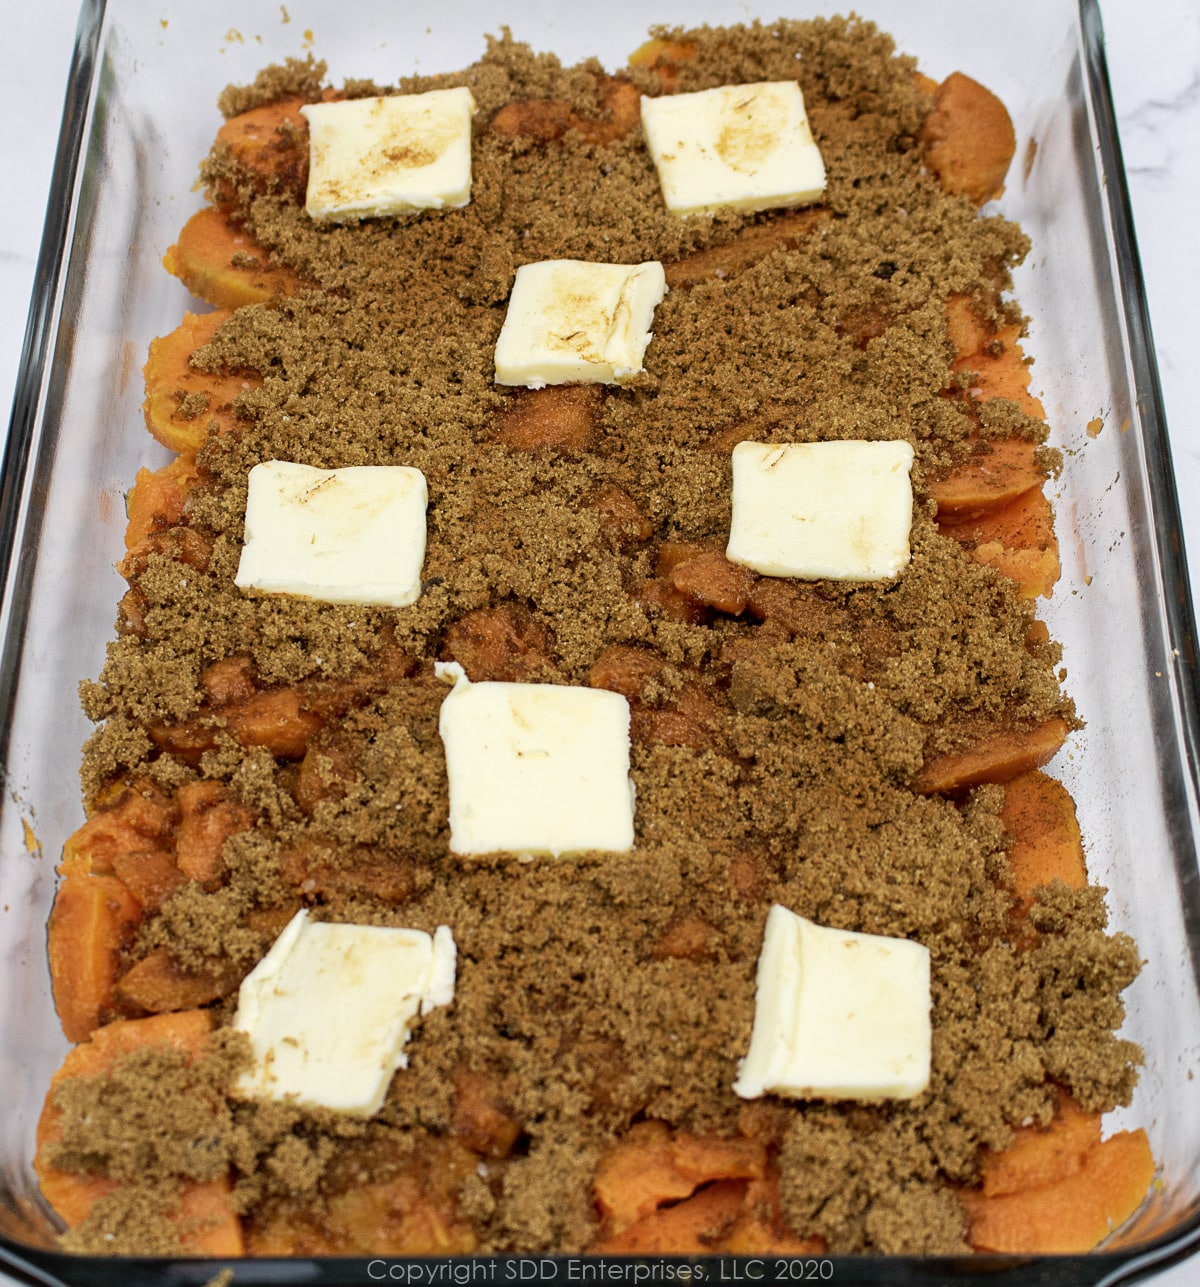 sliced sweet potato layer with brown sugar, cinnamon and butter in a baking dish